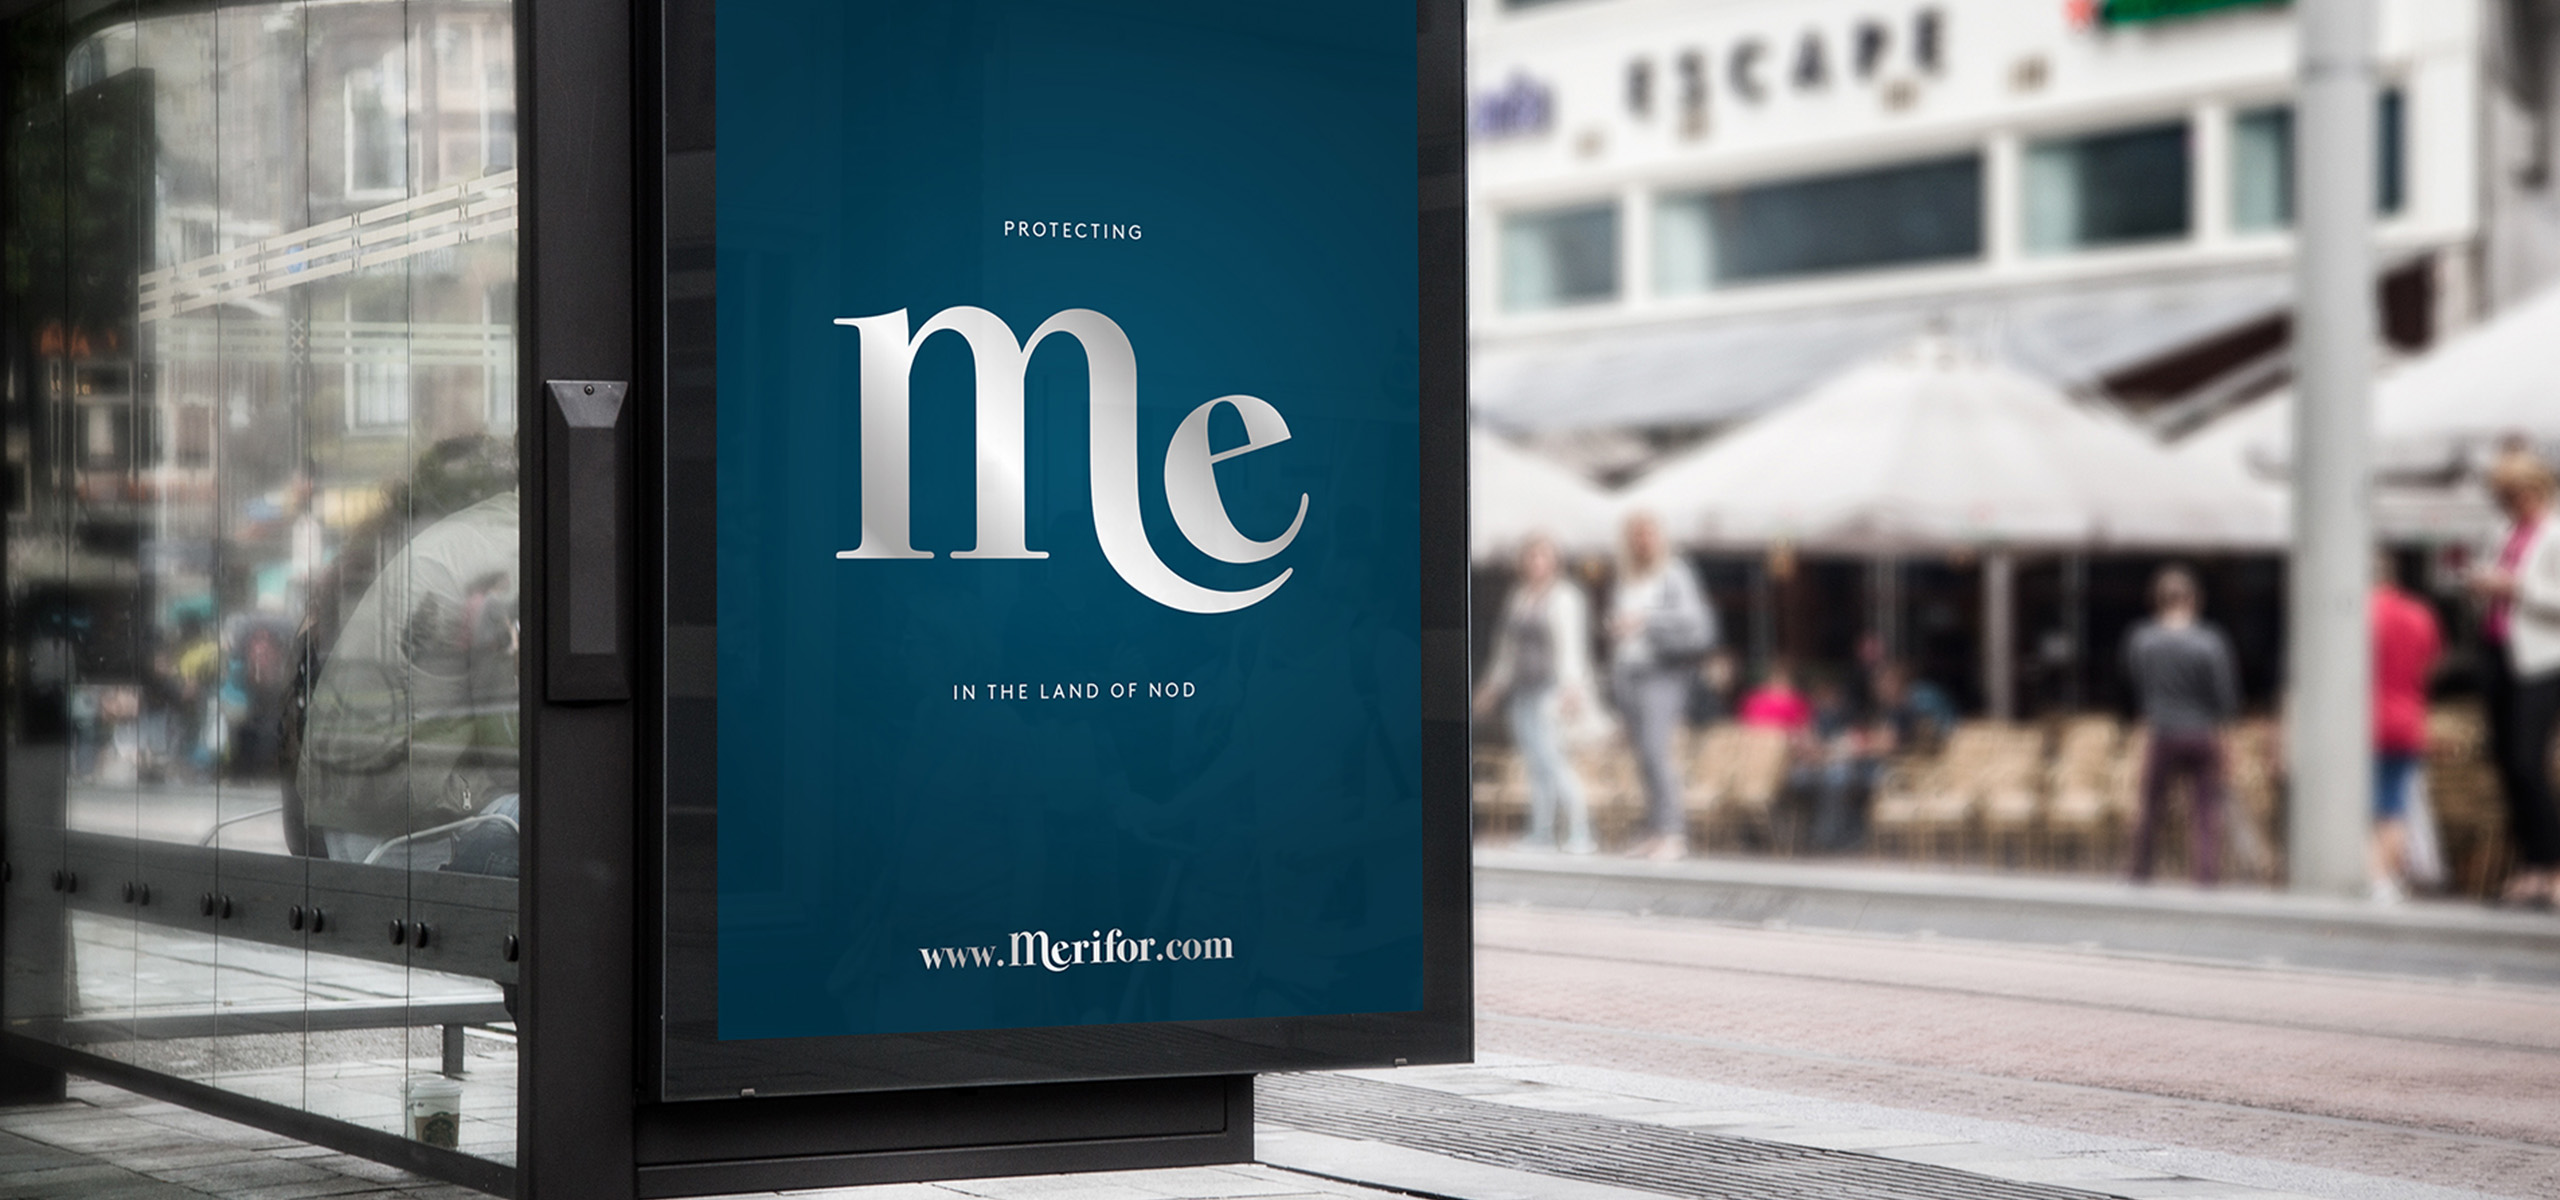 Bus stop design for mattress startup brand Merifor, art directed by White Bear Studio